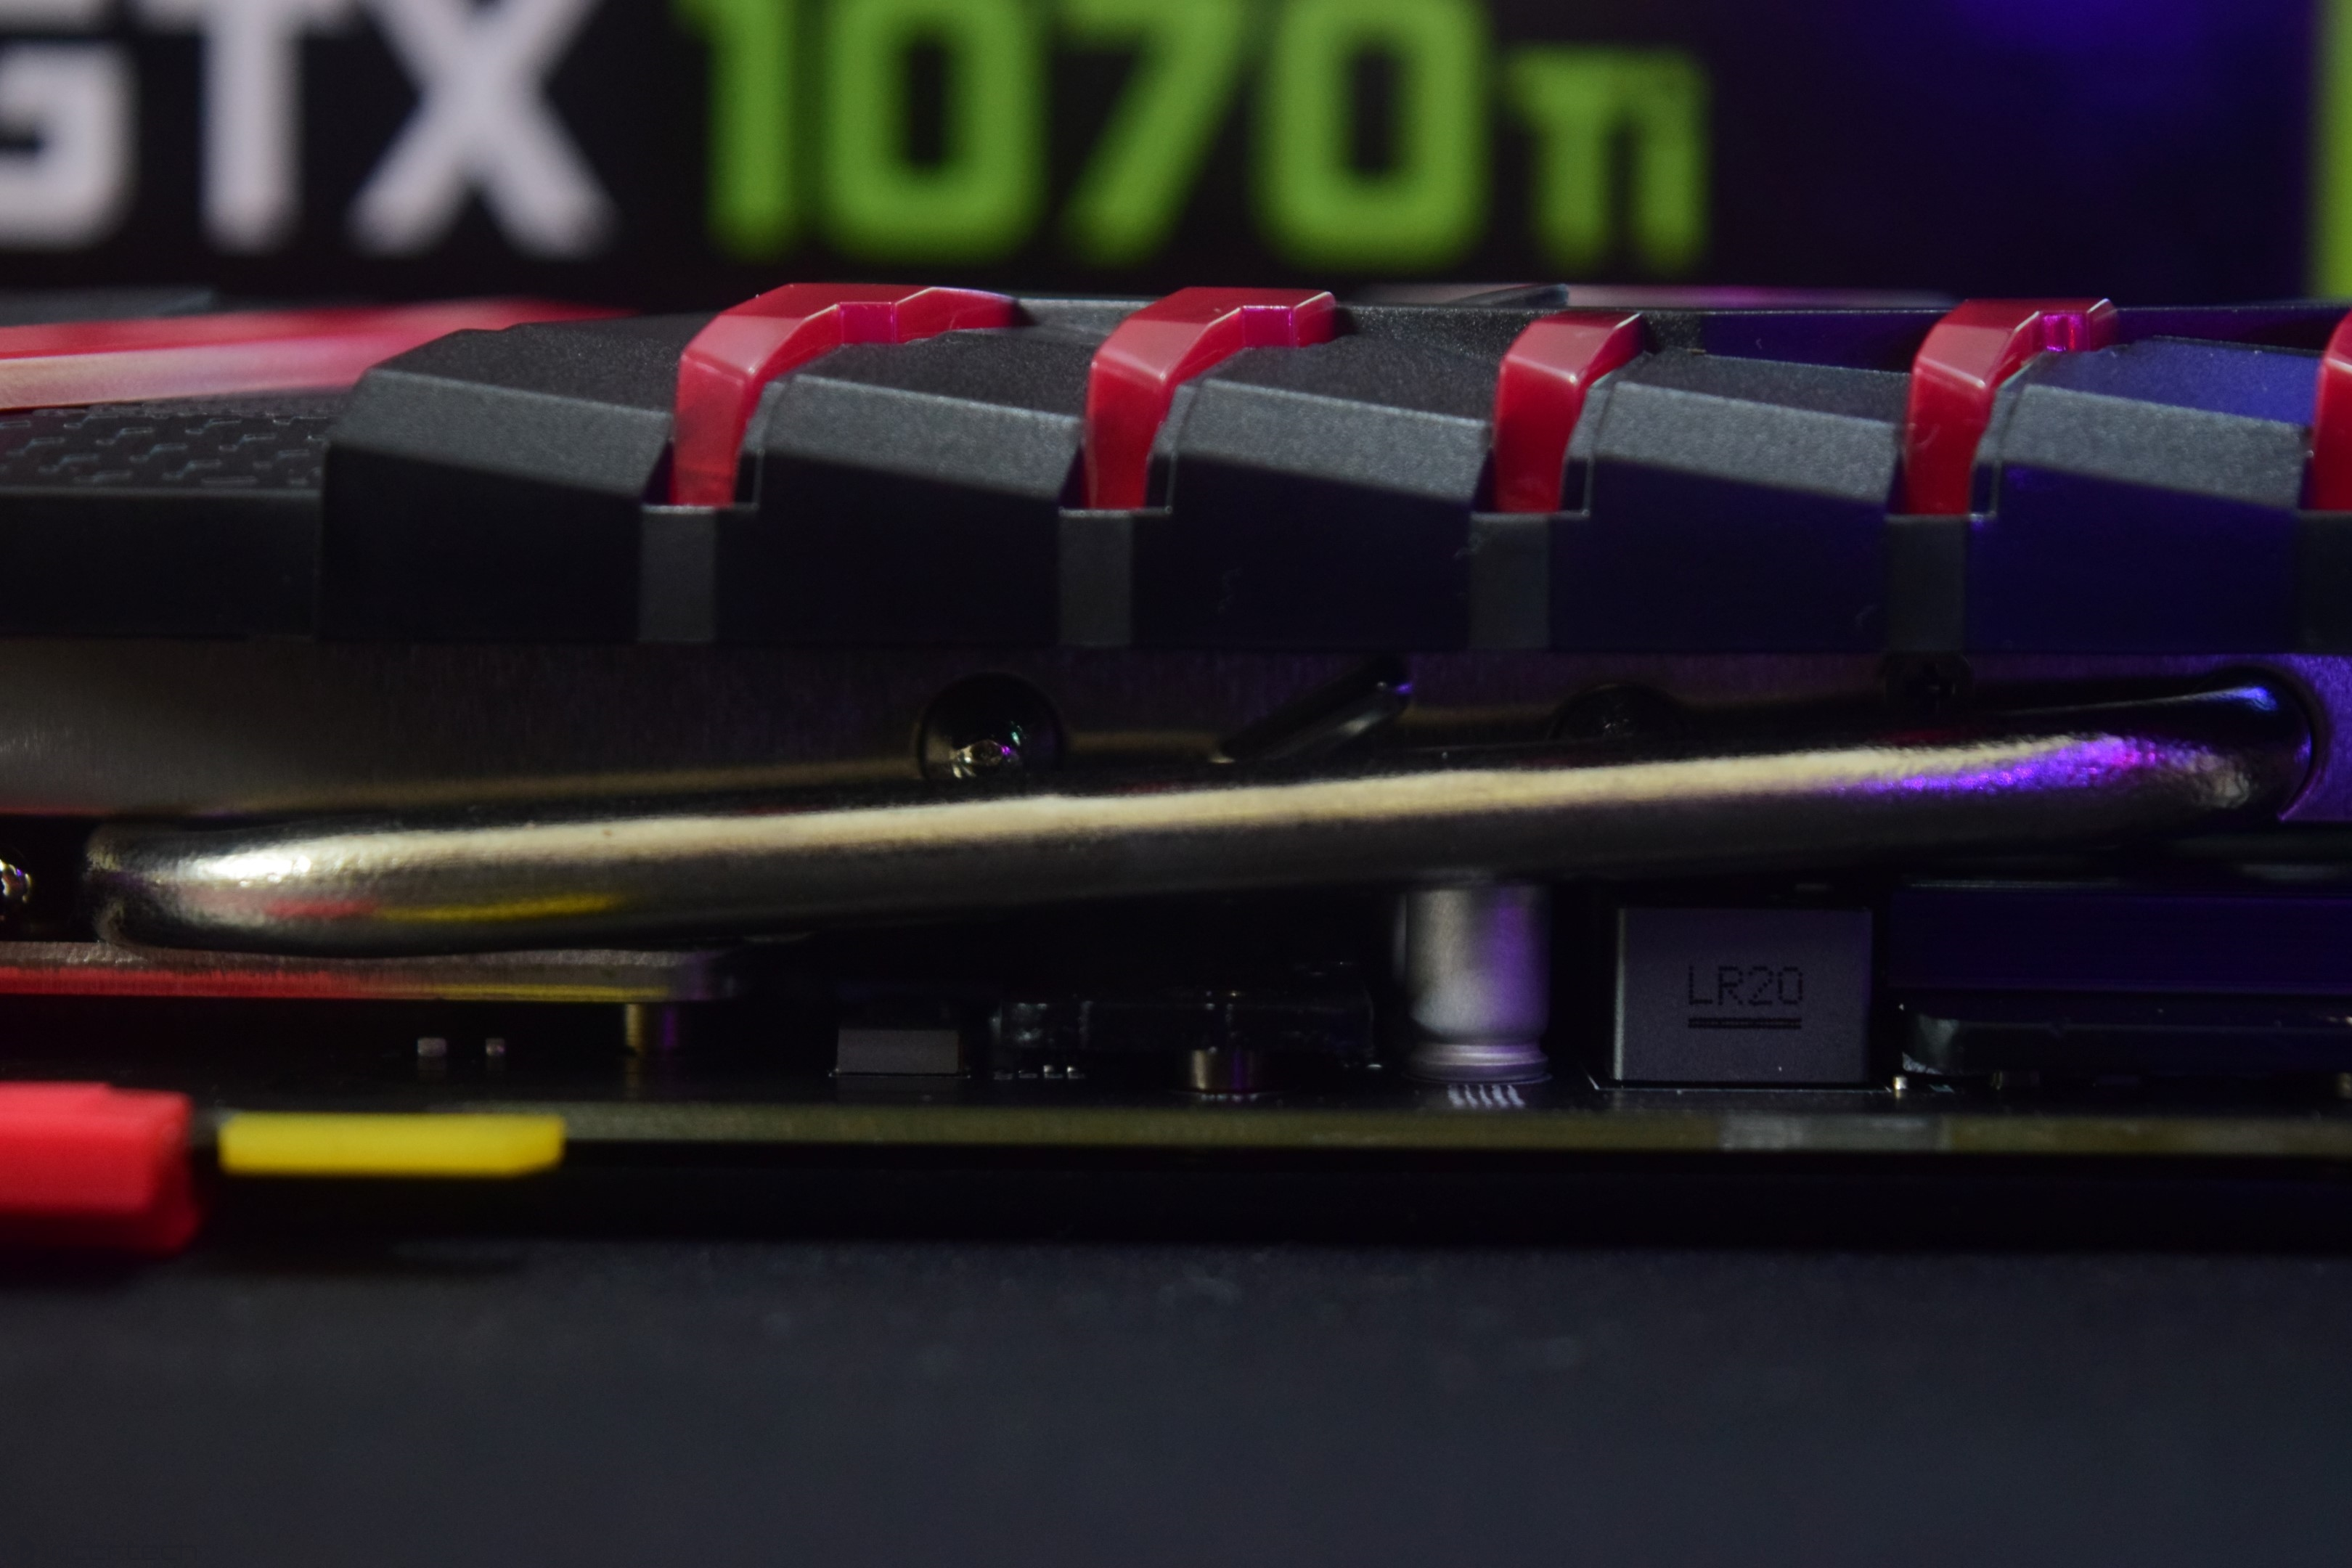 MSI GeForce GTX 1070 Ti Gaming 8 GB Review – GTX 1070 Gets